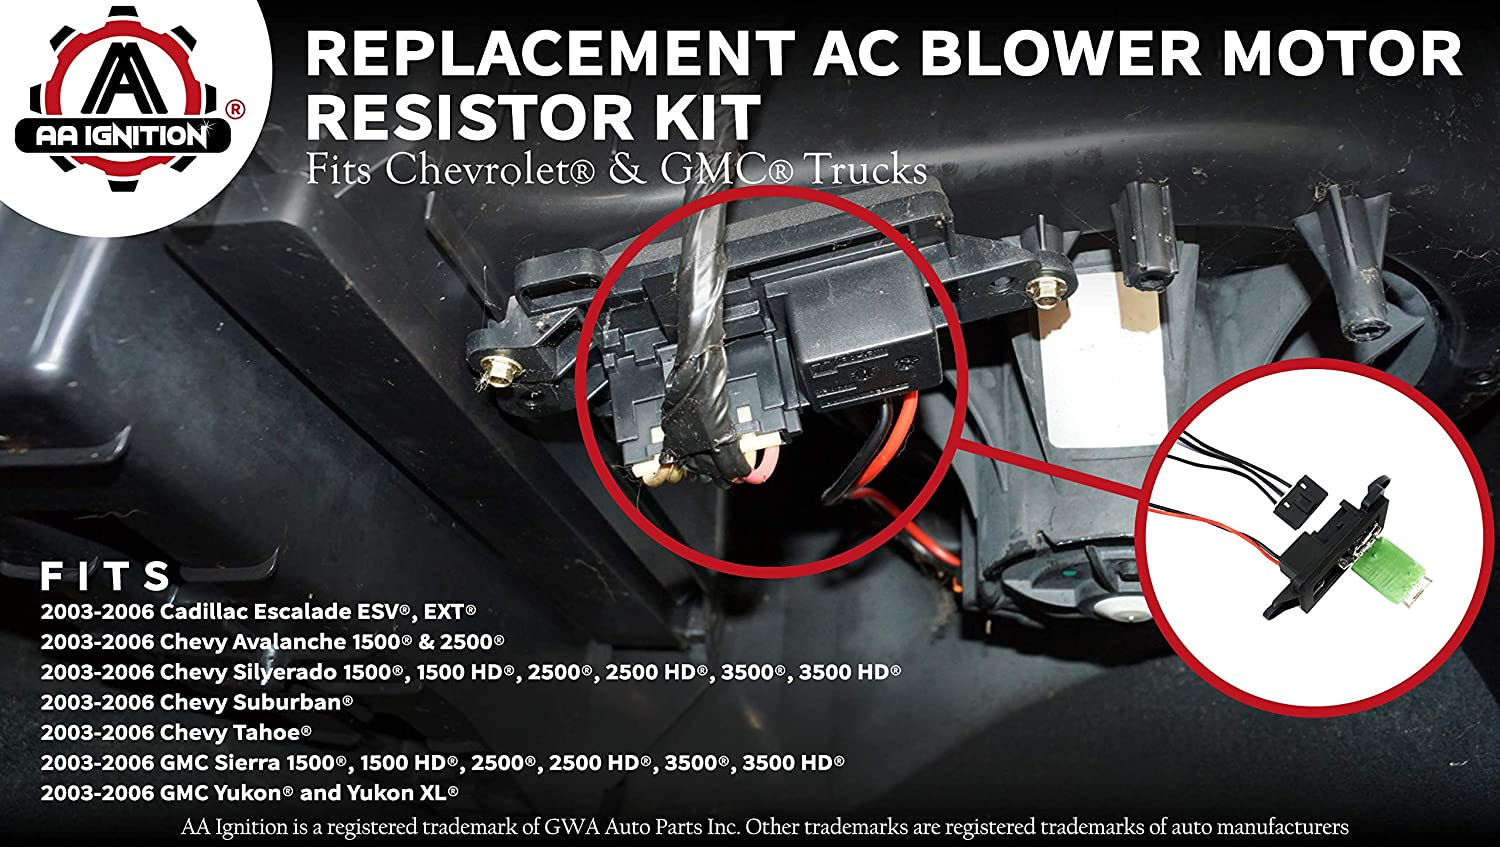 Ac Blower Motor Resistor Kit With Harness Replaces Wiring Is This Correct 89019088 973 405 15 81086 22807123 Fits Chevy Silverado Tahoe Suburban Avalanche